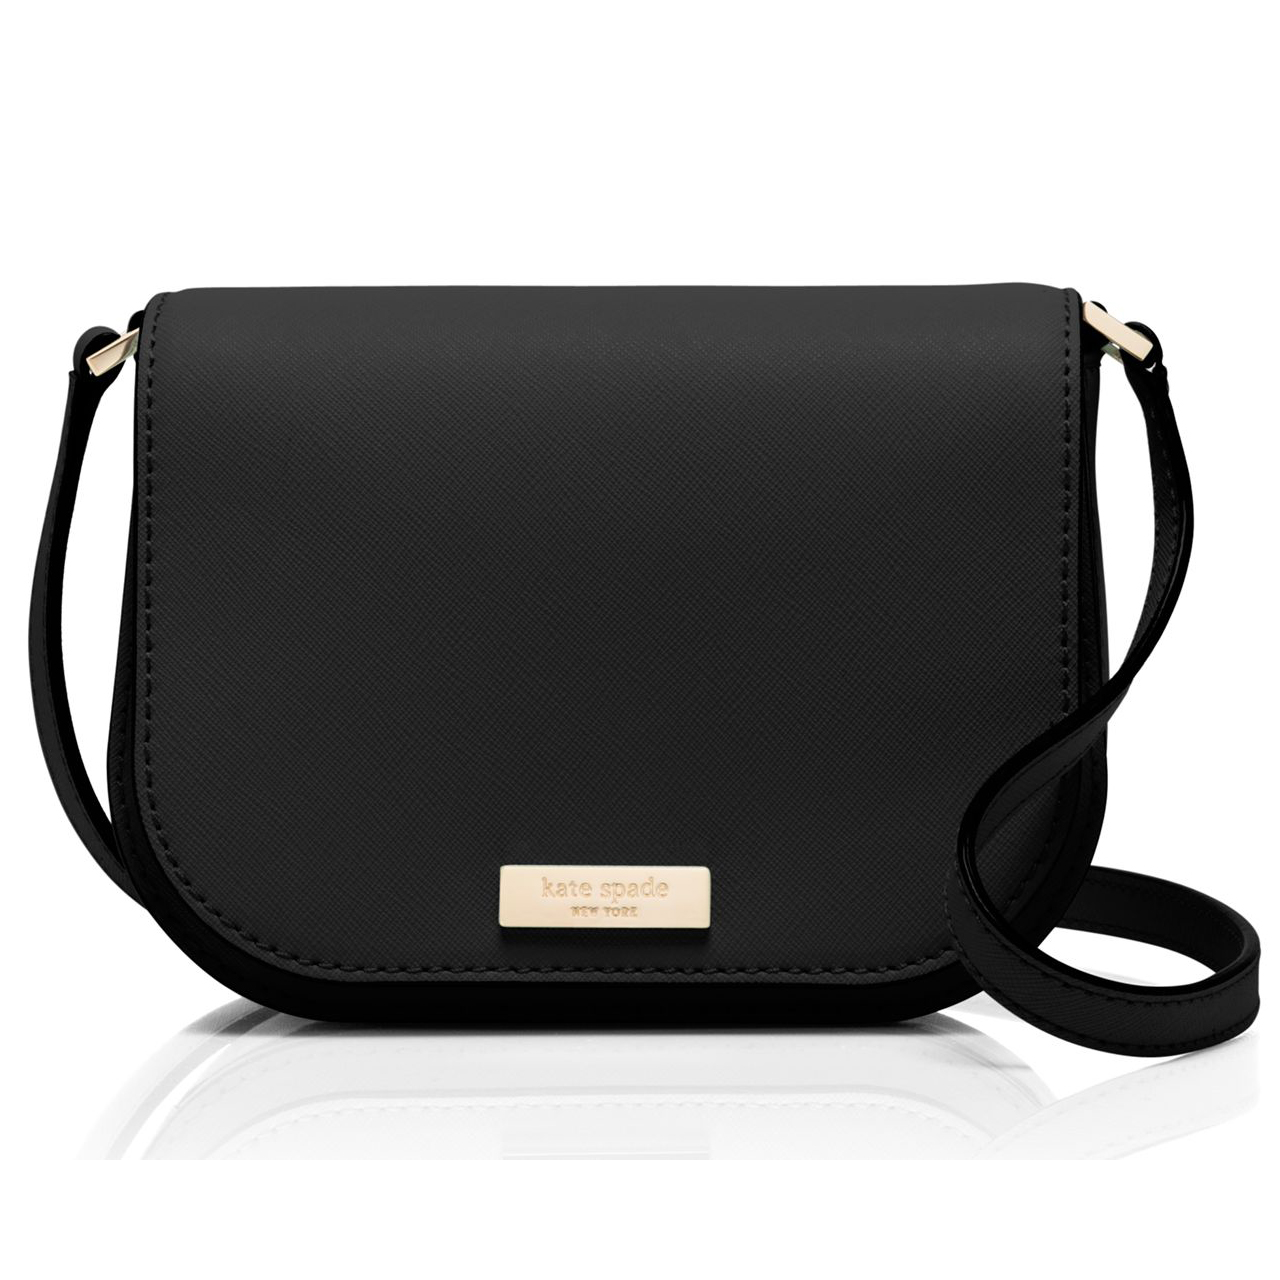 Kate Spade Newbury Lane Carsen Crossbody Black # WKRU3817